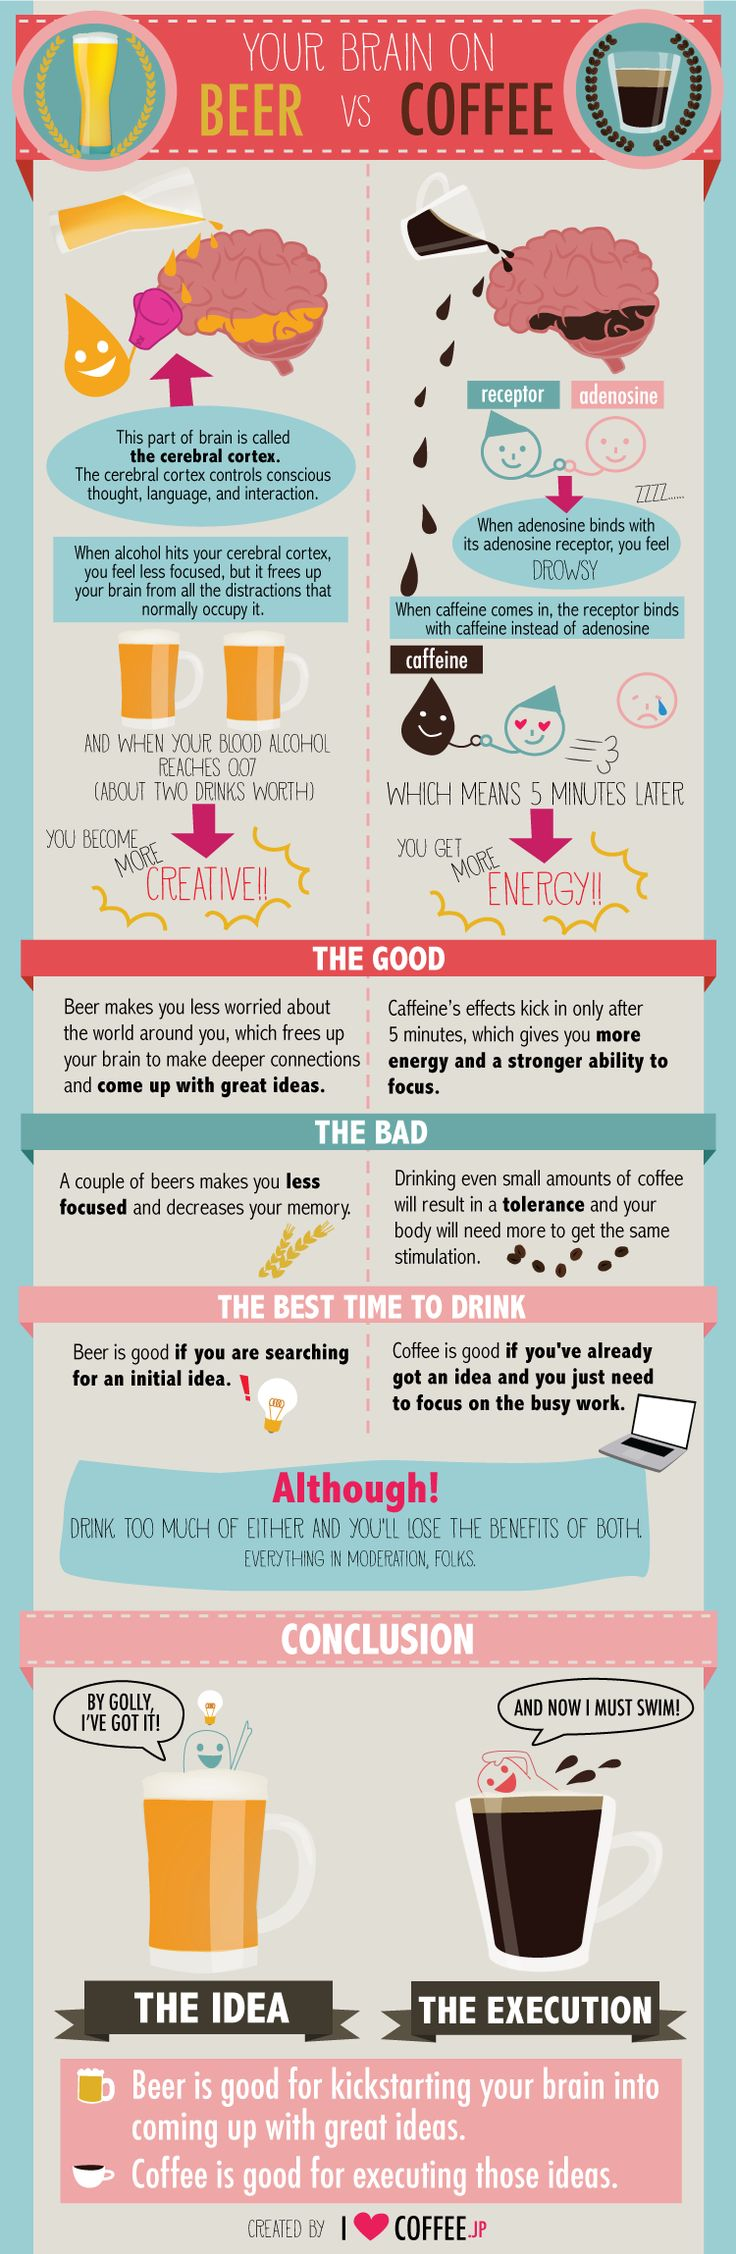 I don't drink either but this is a very interesting #nutrition infographic - Your Brain on Beer vs. Coffee - ILoveCoffee